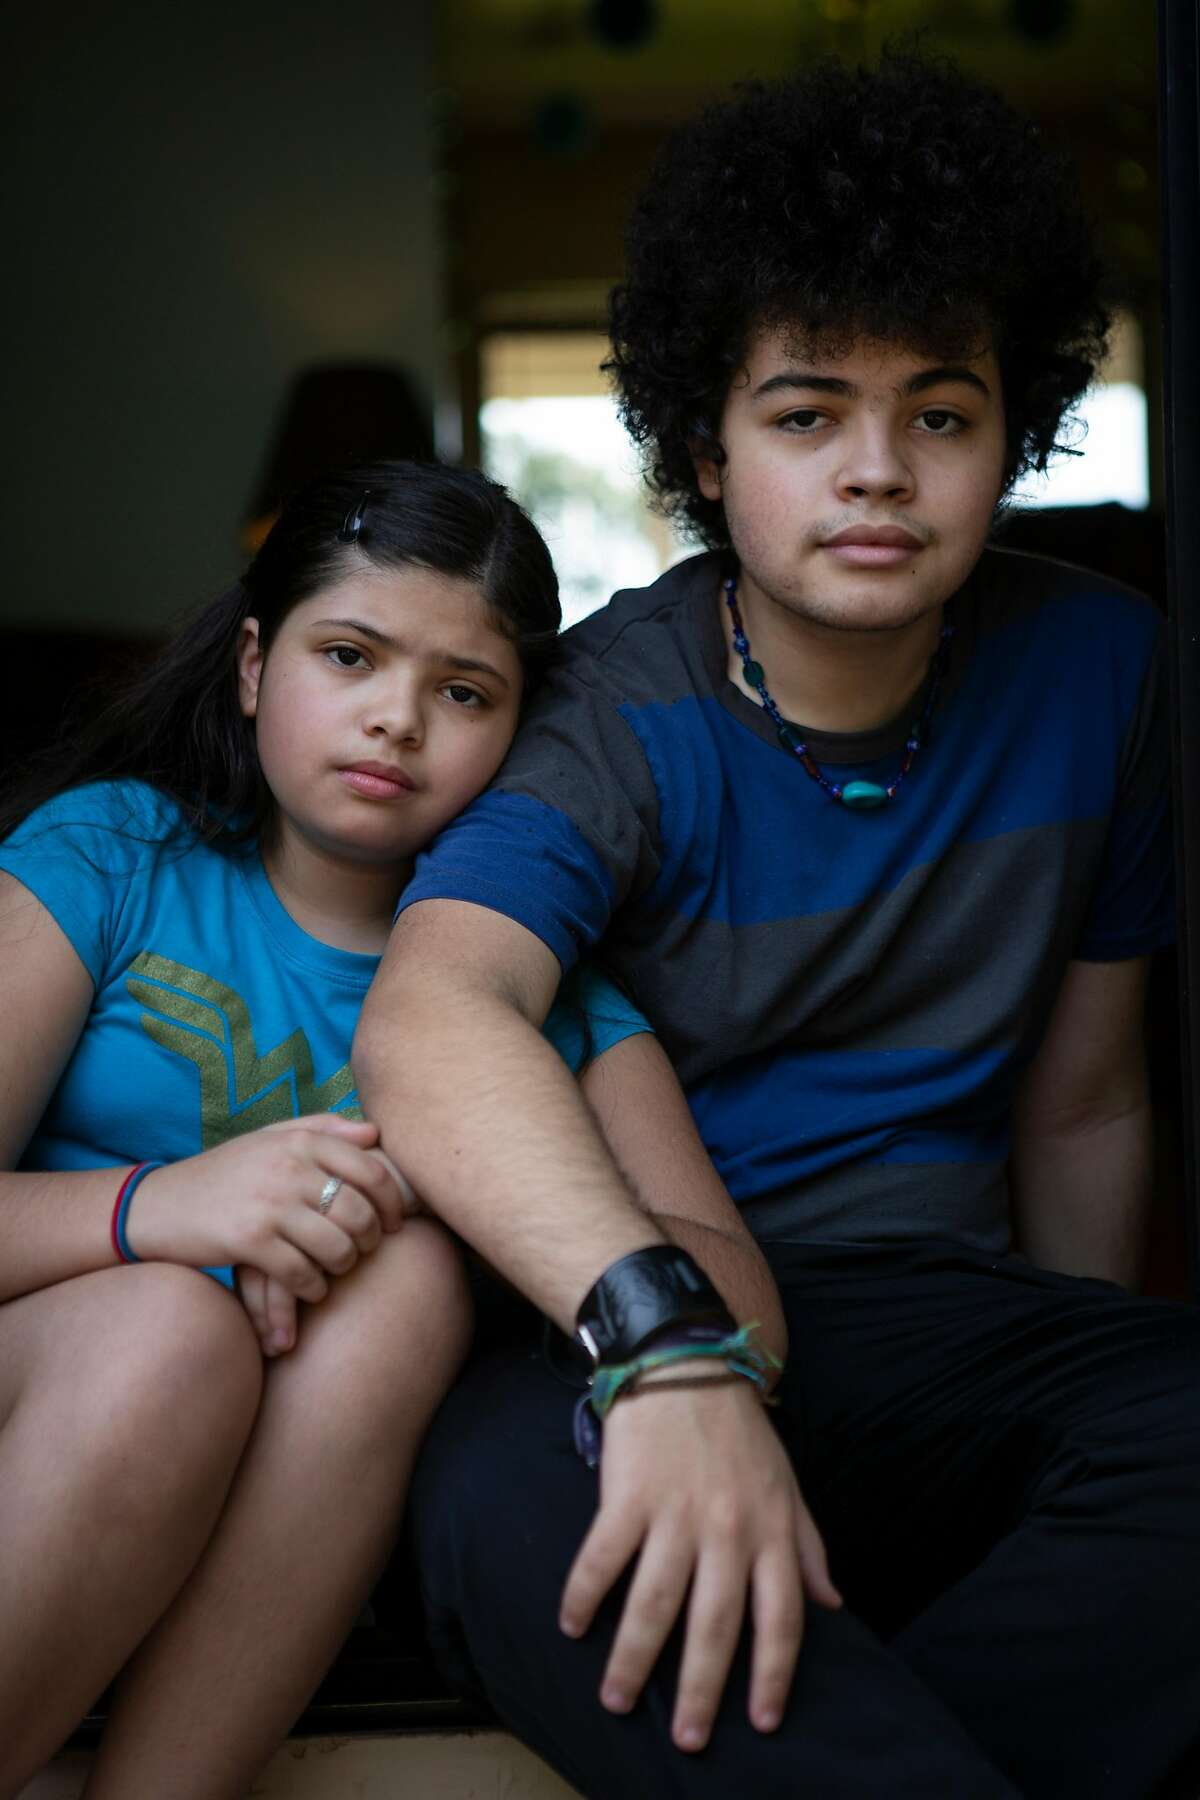 Joaquin and Amaya Williams sit in the doorway of their house. The Williams family have been sheltering-in-place at their home in Petaluma, California since March.